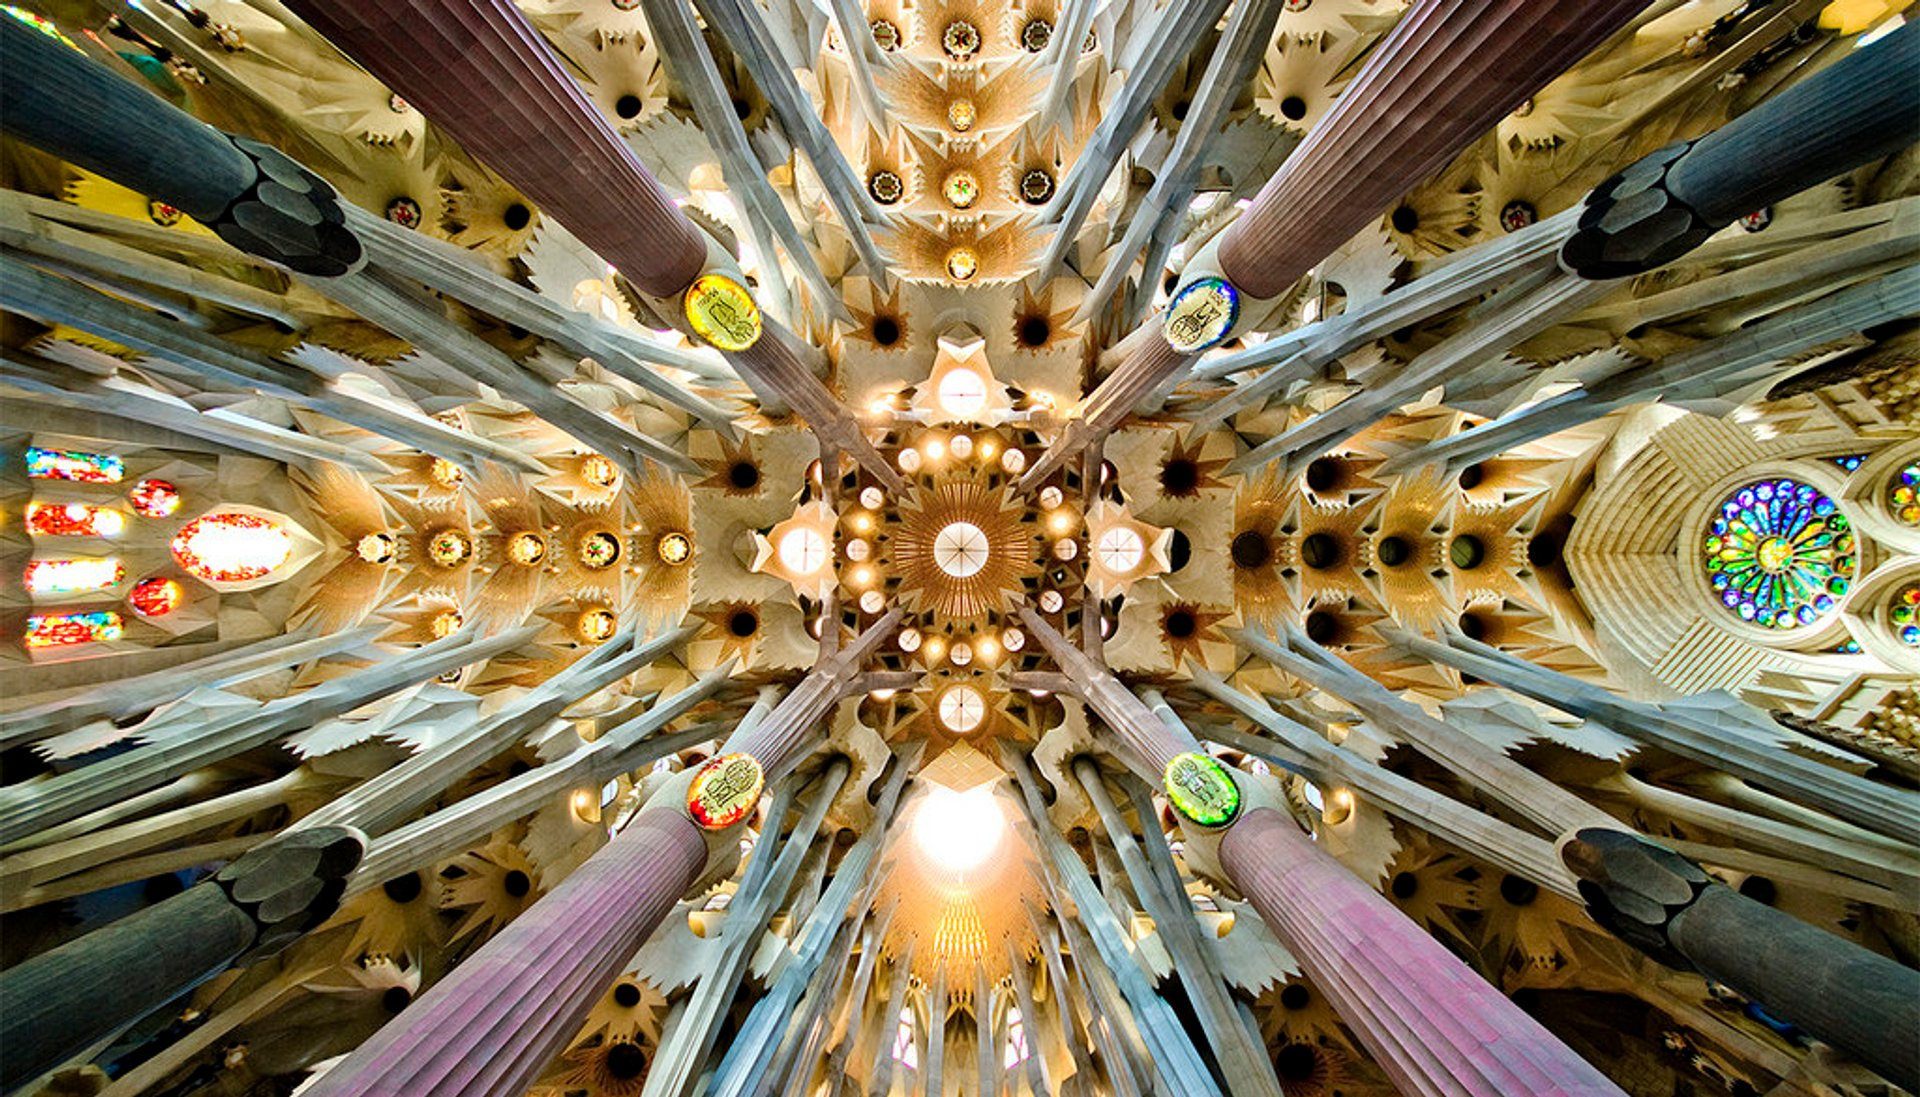 The crossing and dome of the Sagrada Família basilica 2020